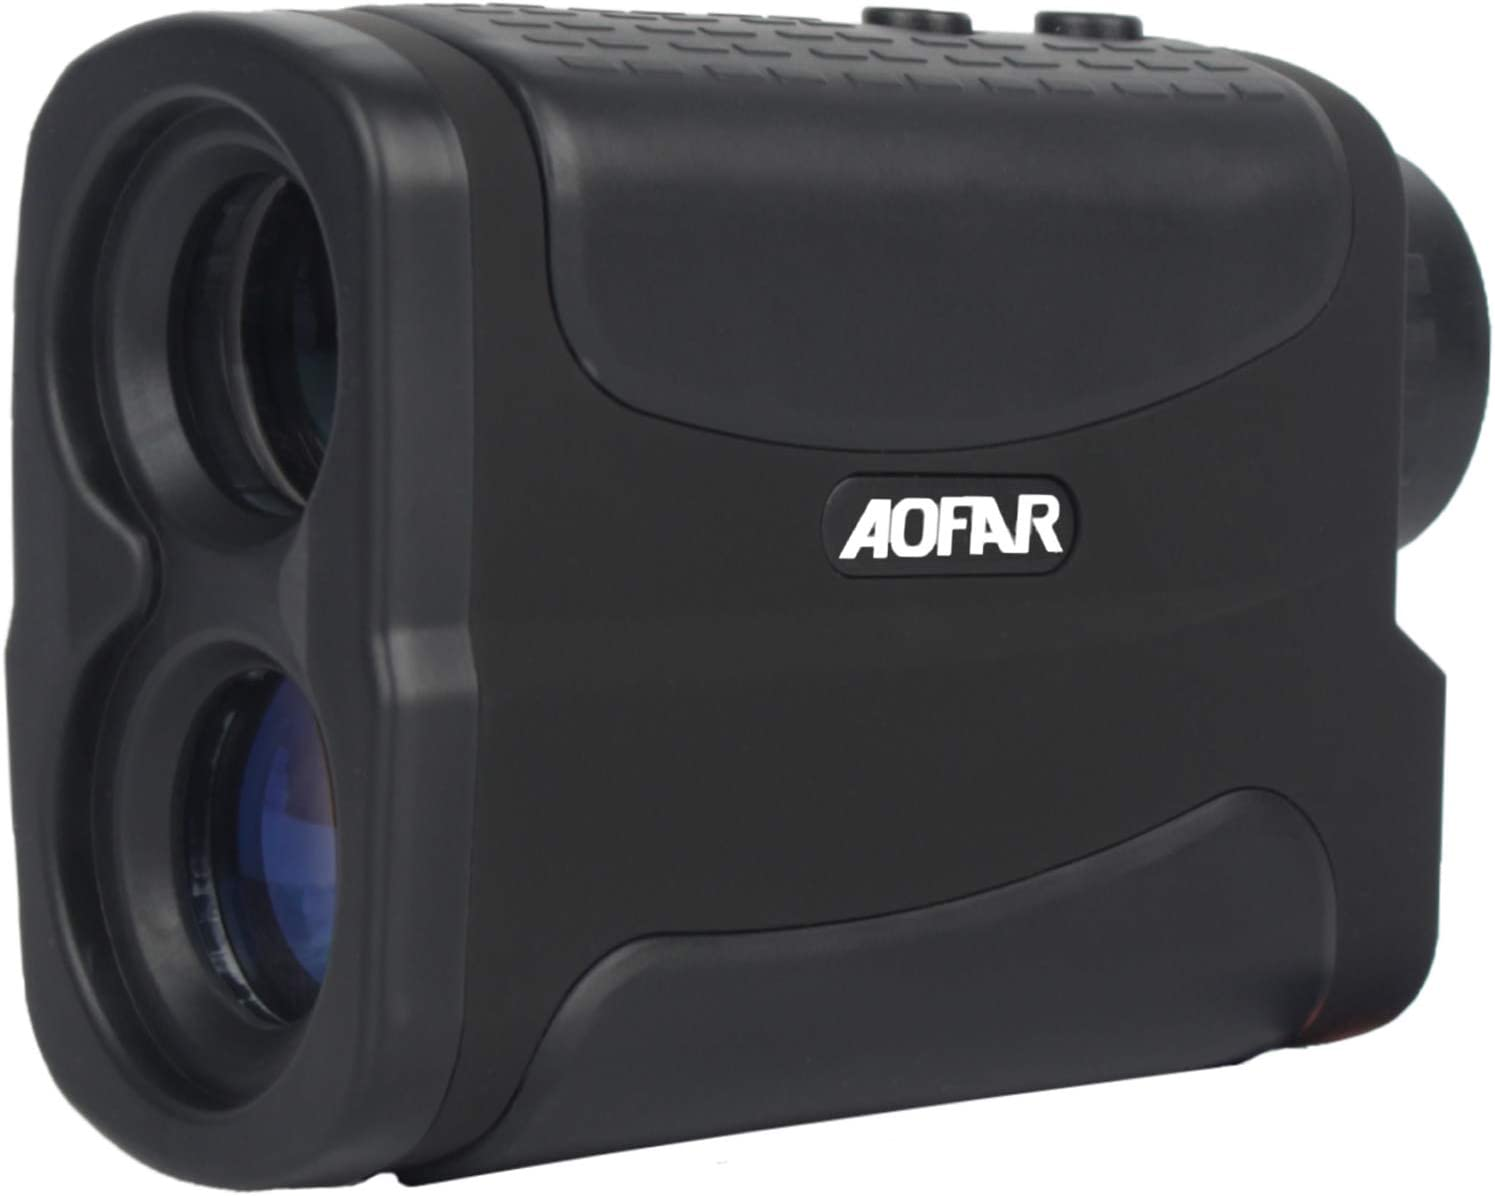 AOFAR Hunting Archery Range Finder-700 1000 Yards Waterproof Rangefinder for Bow Hunting with Range Scan Fog and Speed Mode, Free Battery, Carrying Case